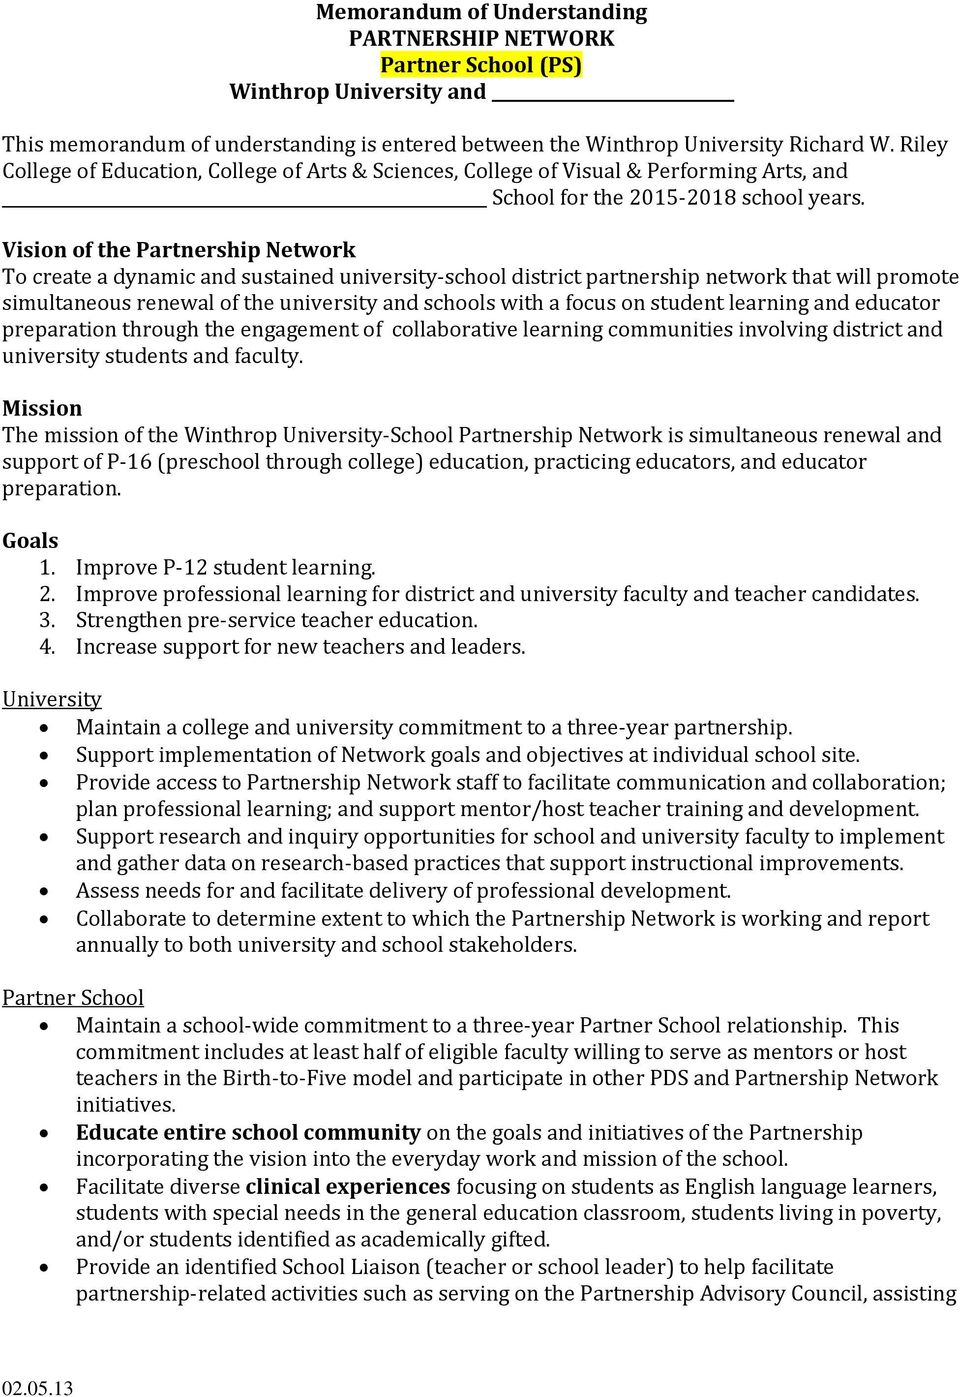 Vision of the Partnership Network To create a dynamic and sustained university school district partnership network that will promote simultaneous renewal of the university and schools with a focus on